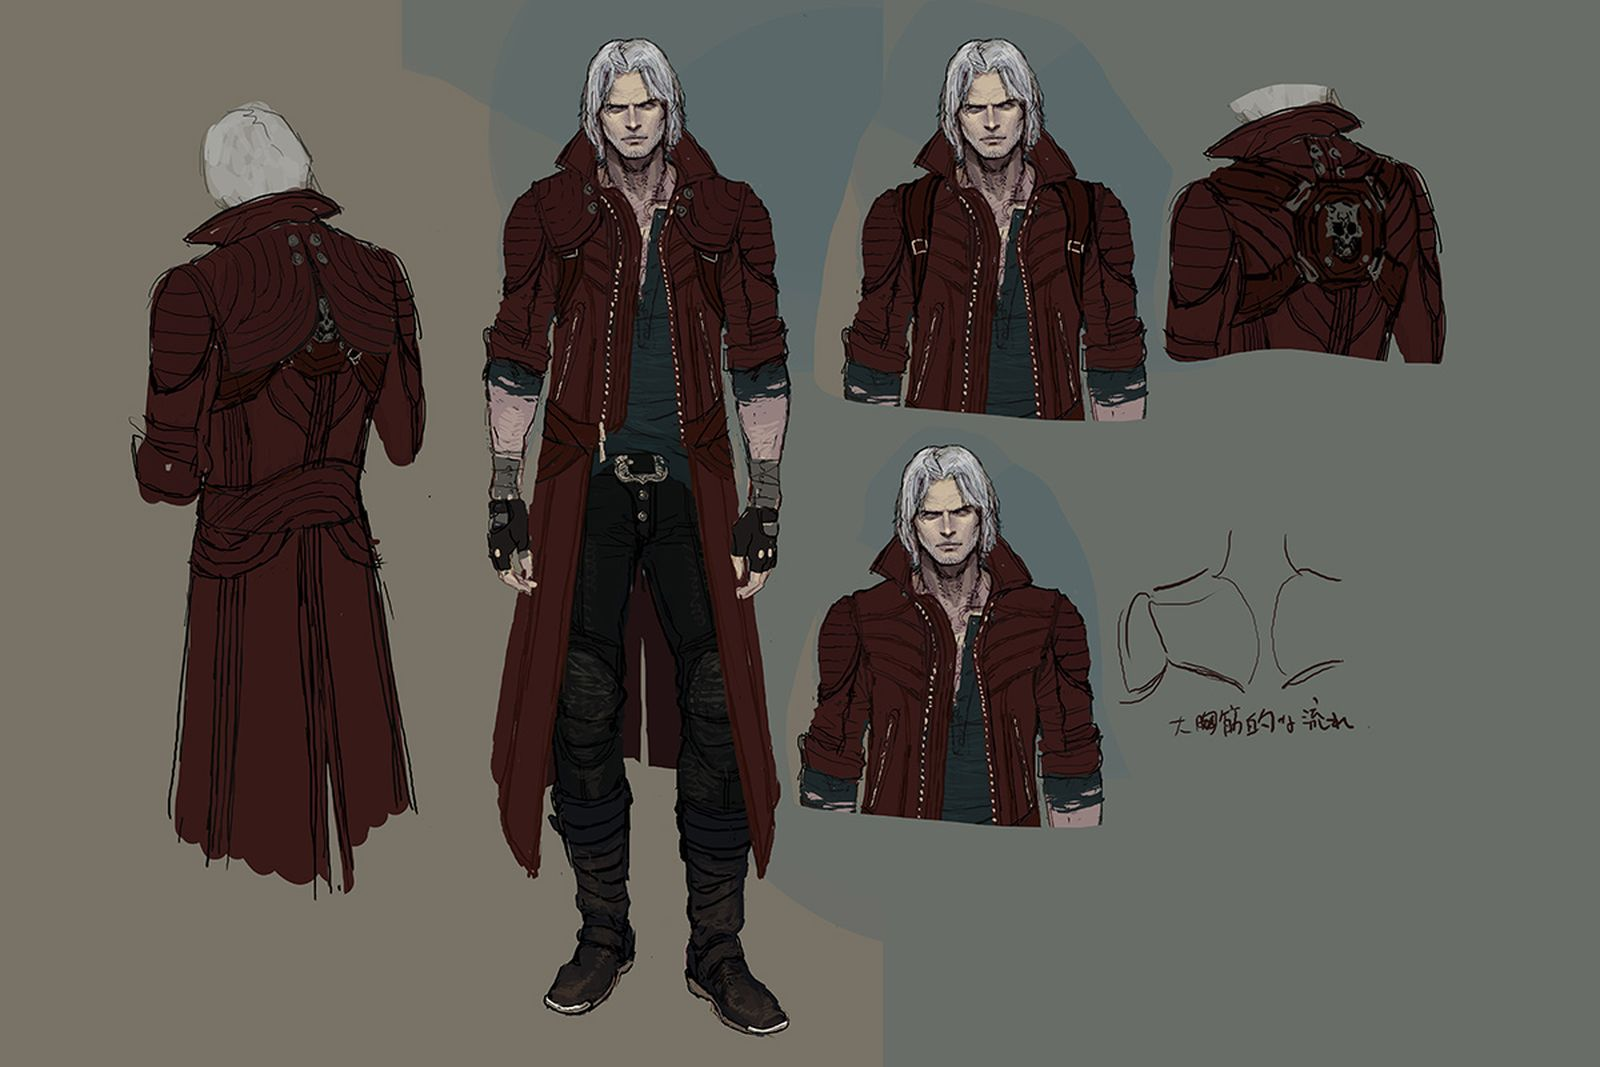 dmc5 Dante Devil May Cry 5 interview playstation 4